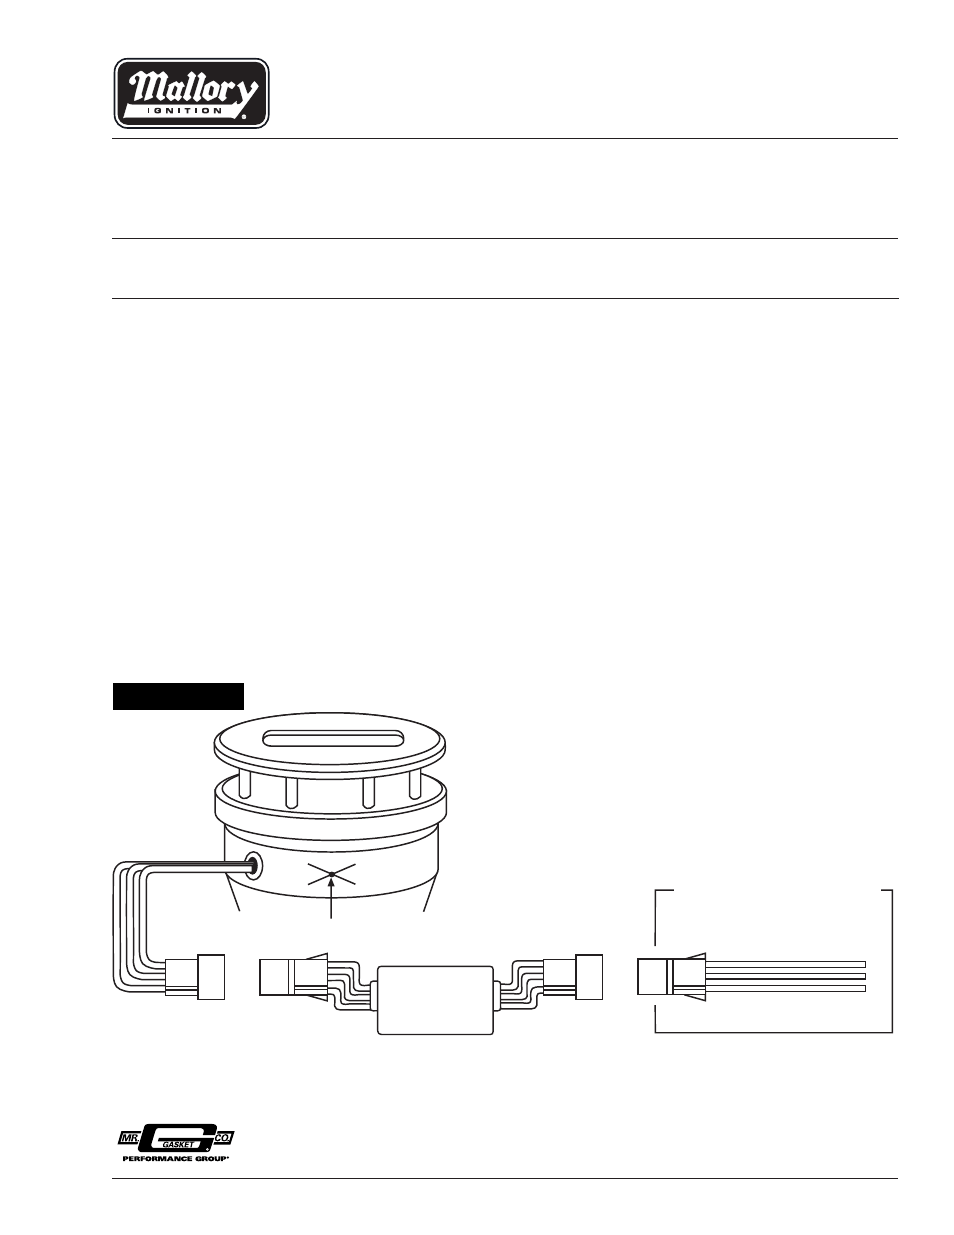 mallory ignition mallory circuit guard 29371 page1?resize\=665%2C861 pro comp distributor wiring diagram & pro comp wiring diagram  at creativeand.co